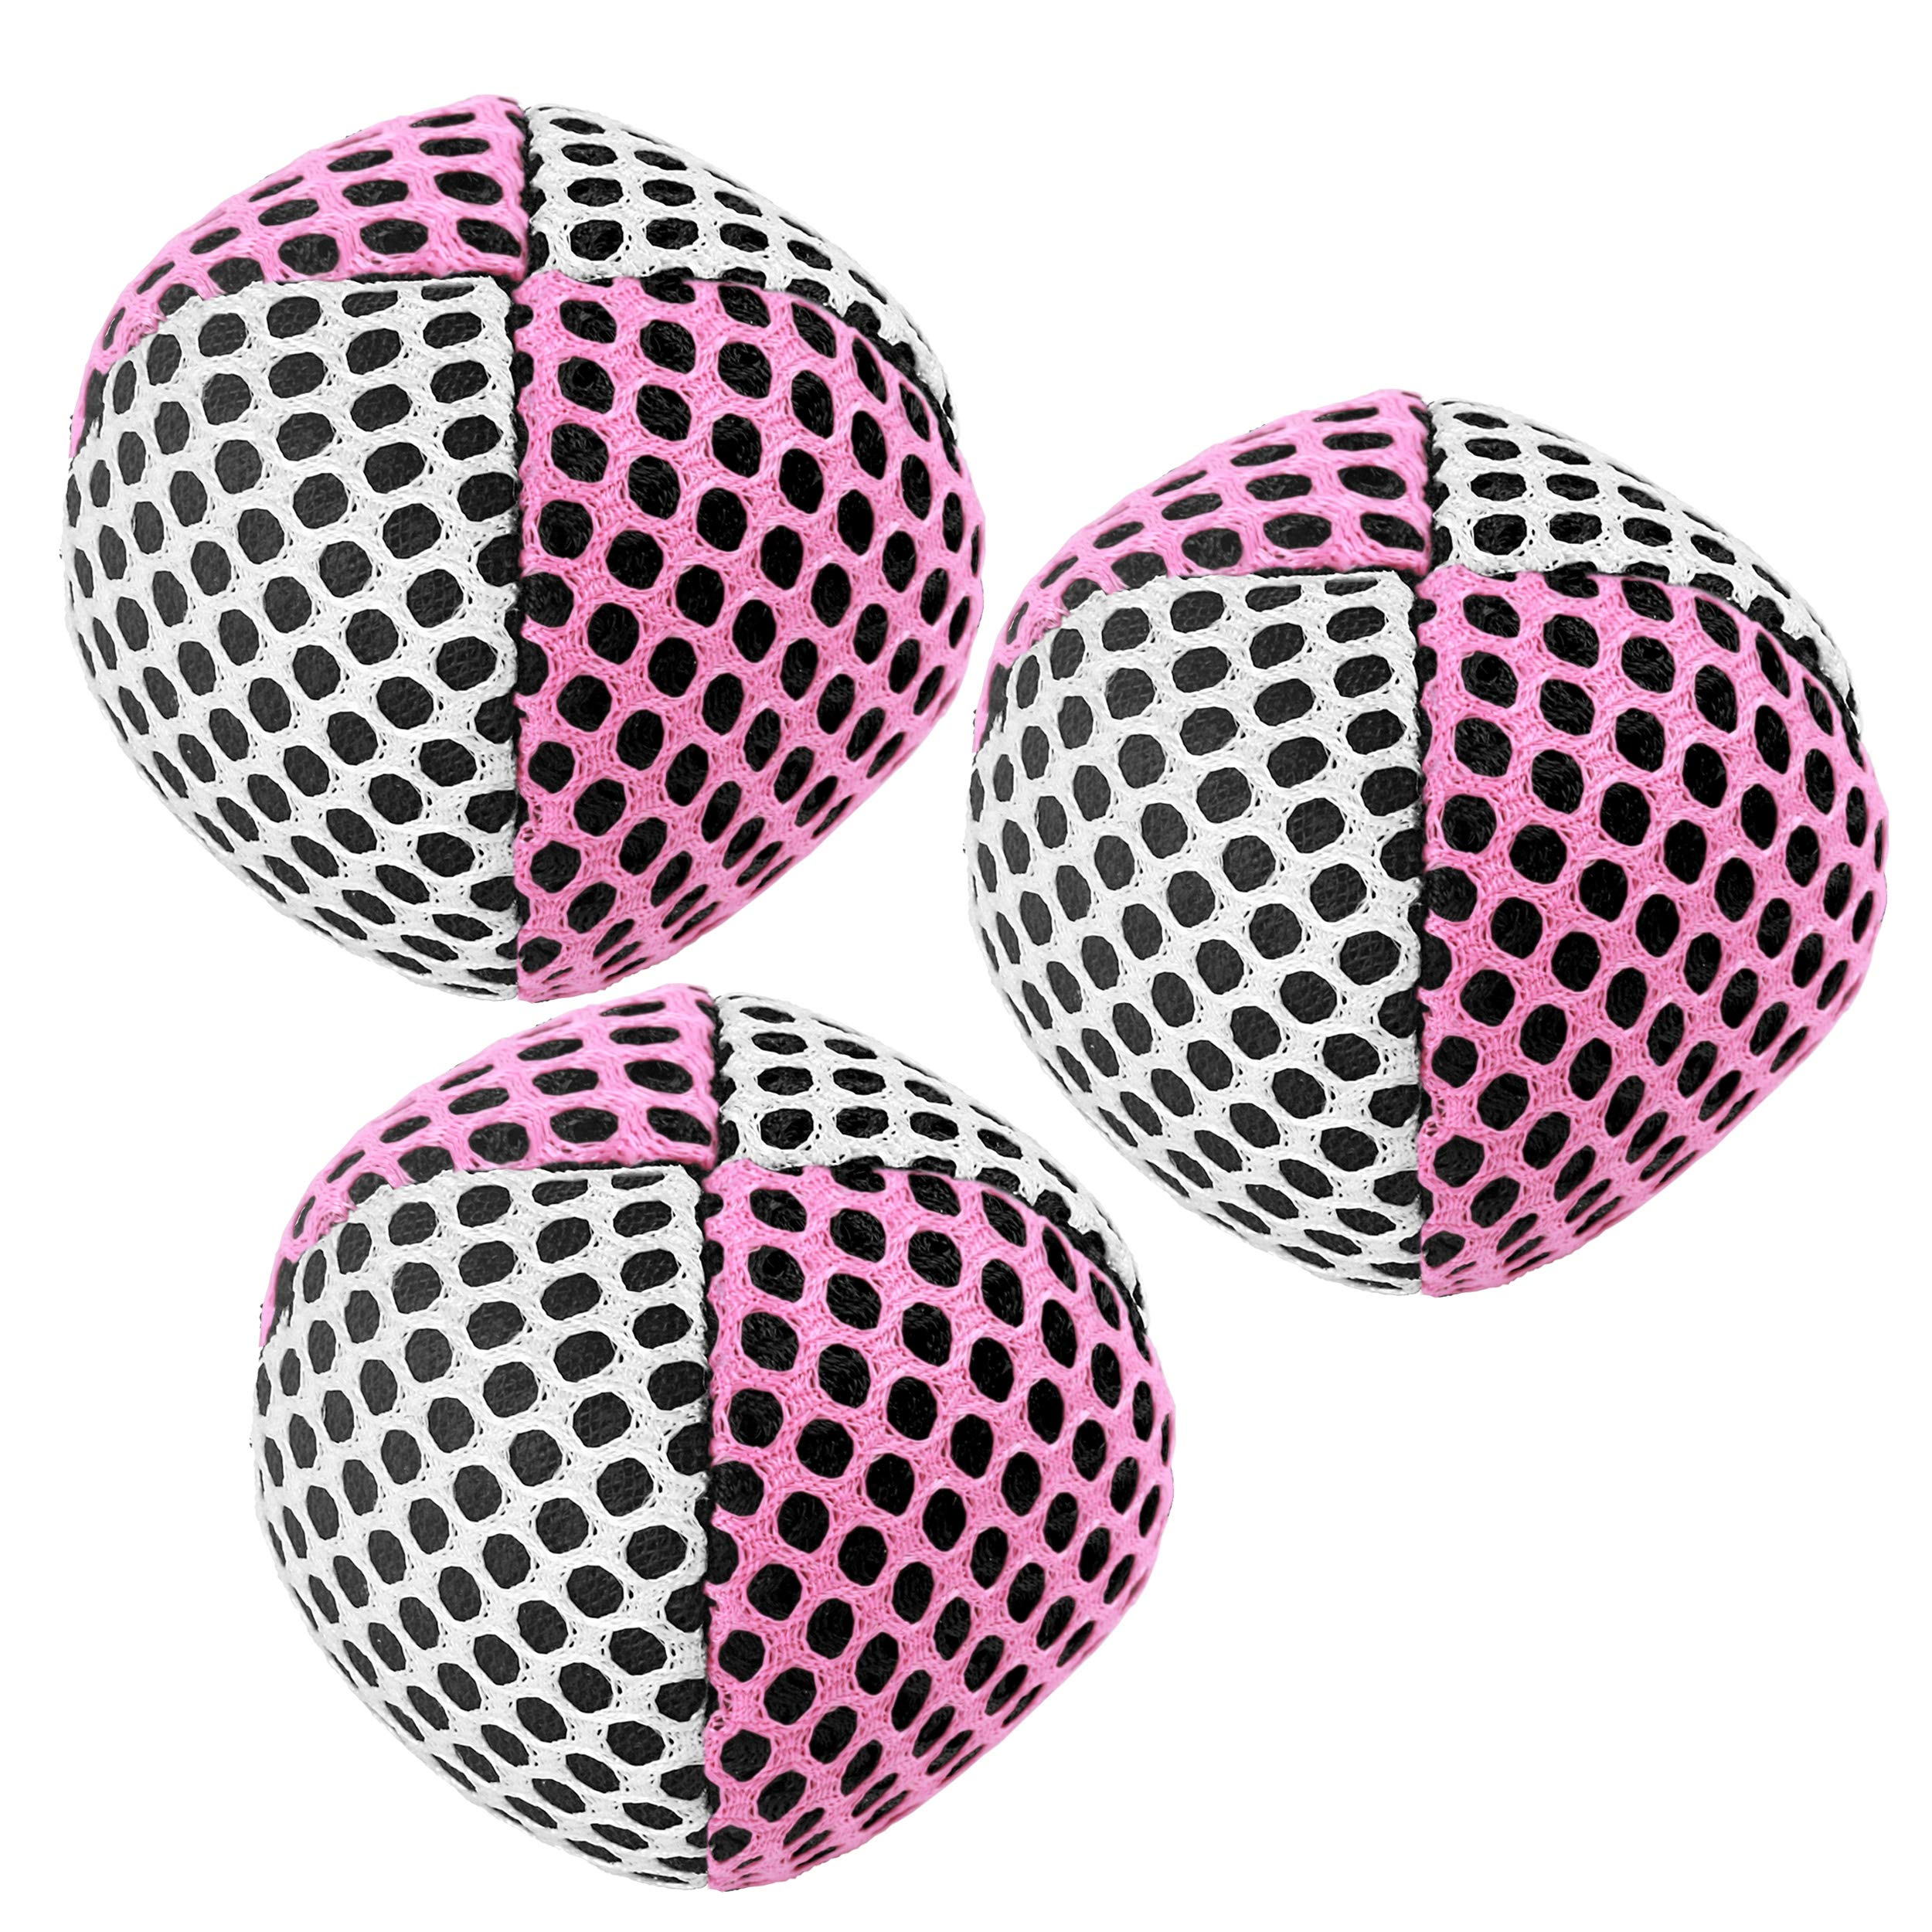 Speevers Xballs Juggling Balls Professional Set of 3 Fresh Design - 10 Beautiful Colors Available - 2 Layers of Net Carry Case - Choice of The World Champions (White - Pink) by Speevers